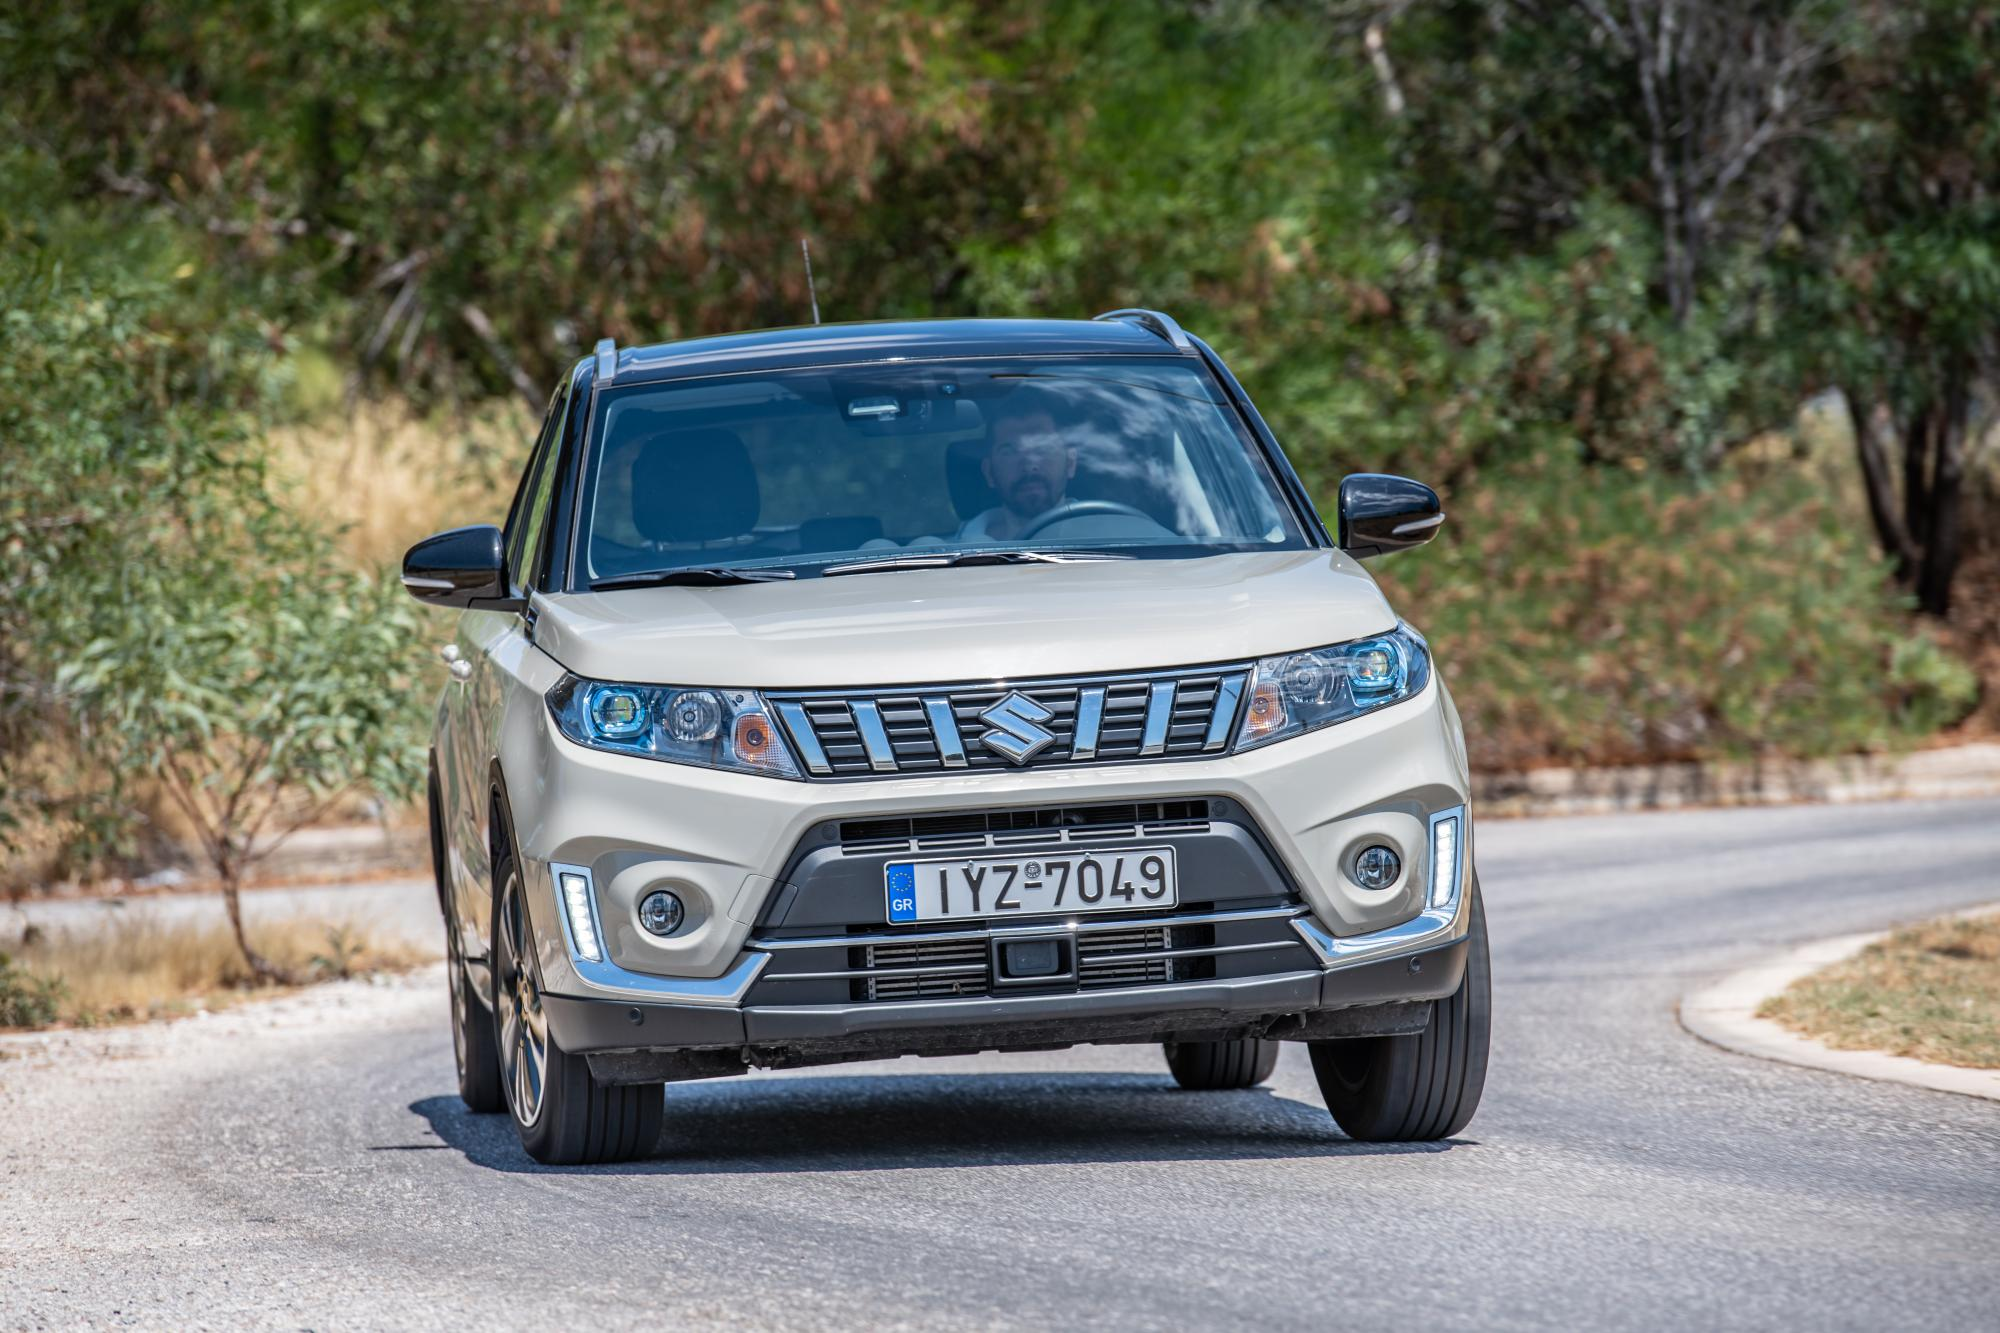 Suzuki Vitara 1.4 BoosterJet 140Ps